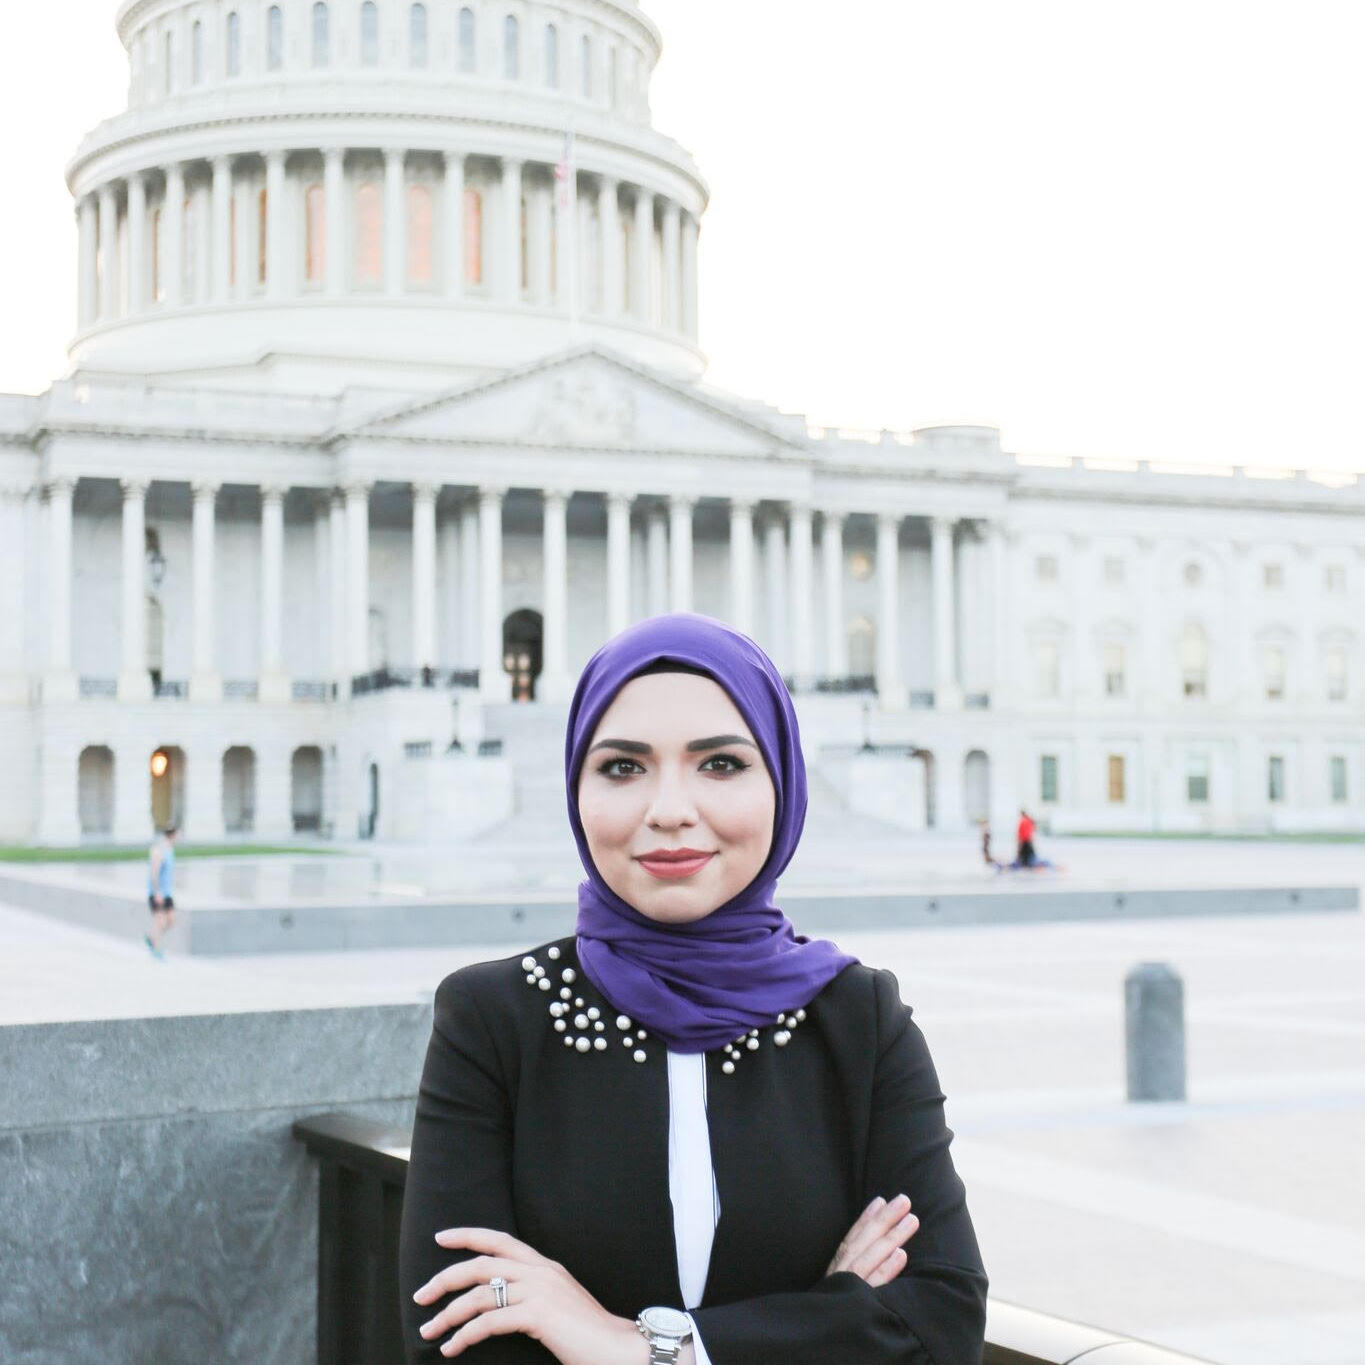 From 9/11 to 2020: The Syrian-American Activist Fighting Islamophobia in Washington